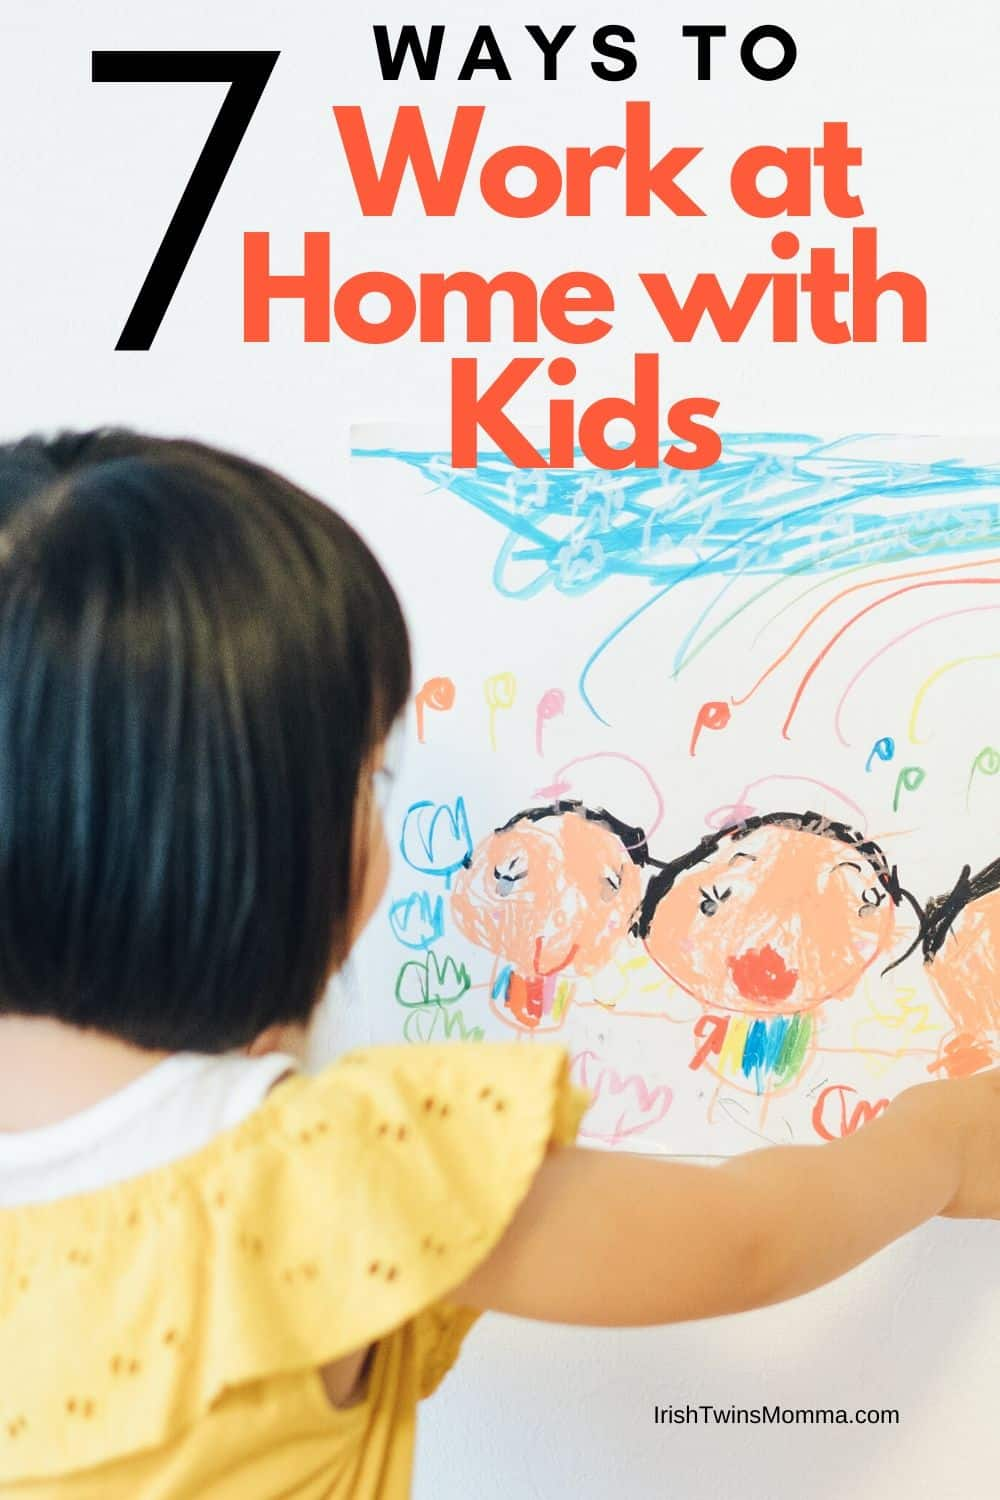 Ways to work with kids in the house.